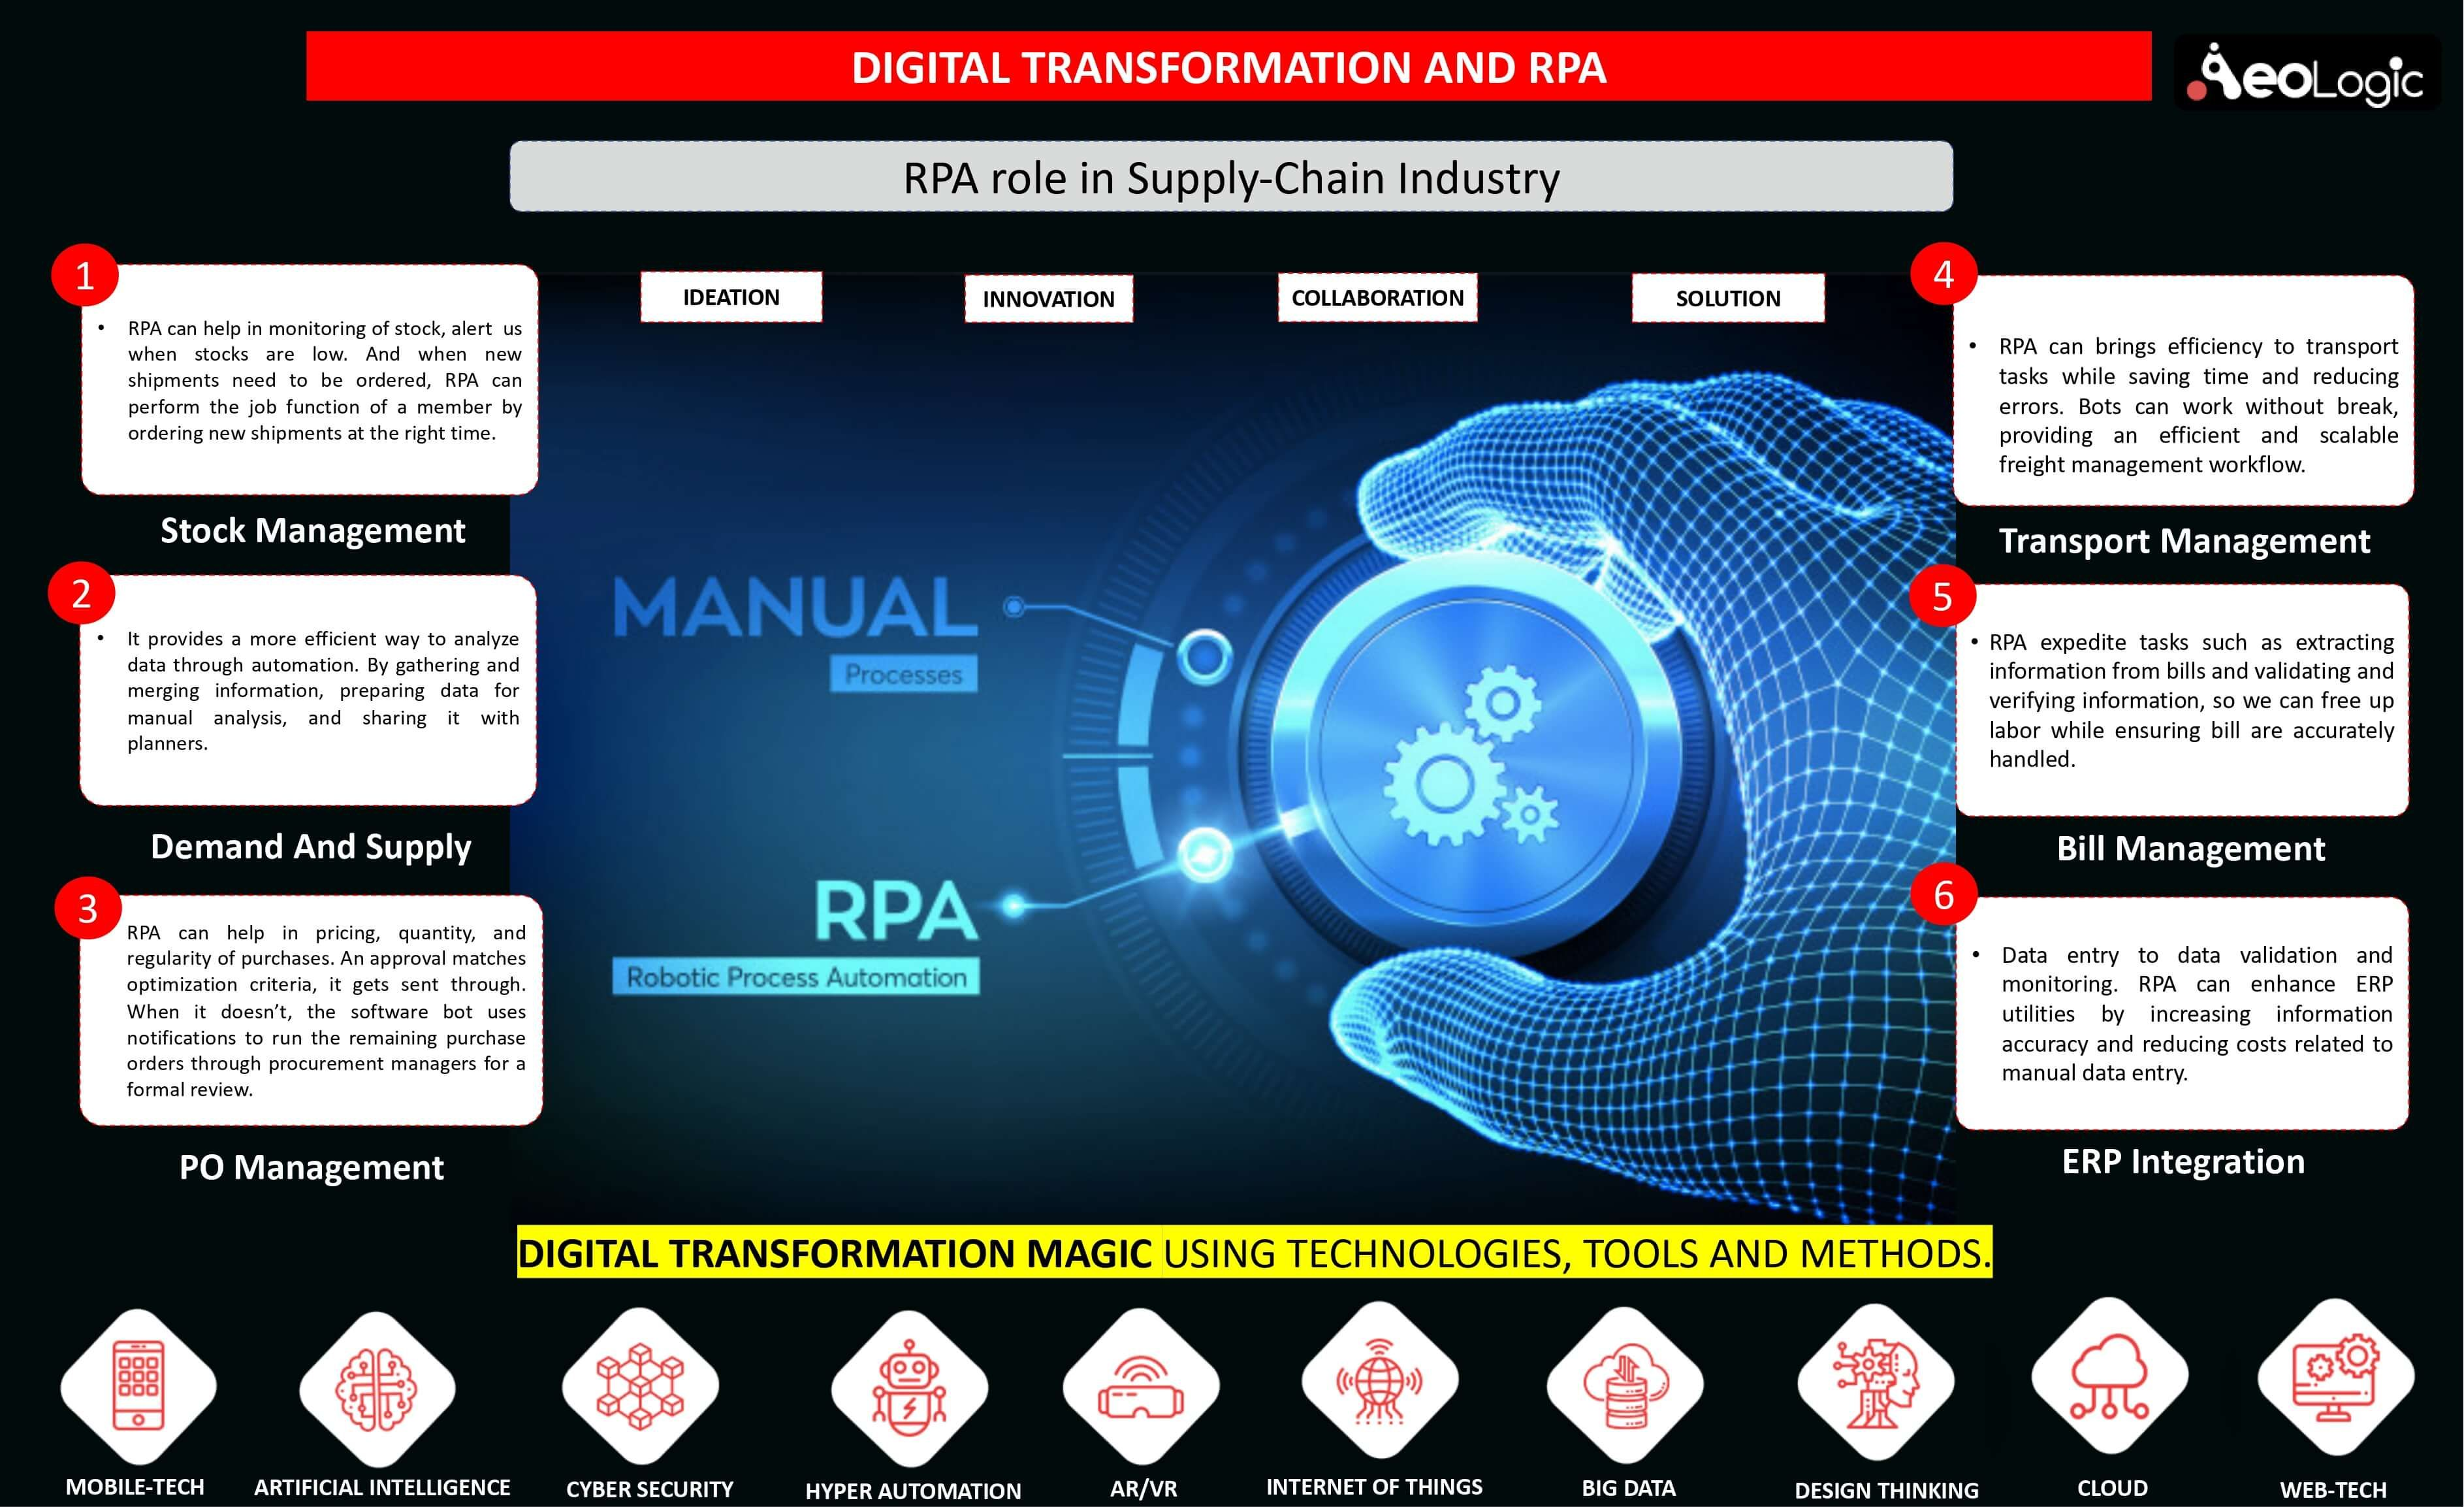 Rpa Role In Supply Chain Industry In 2020 Technology Solutions Digital Transformation Solutions